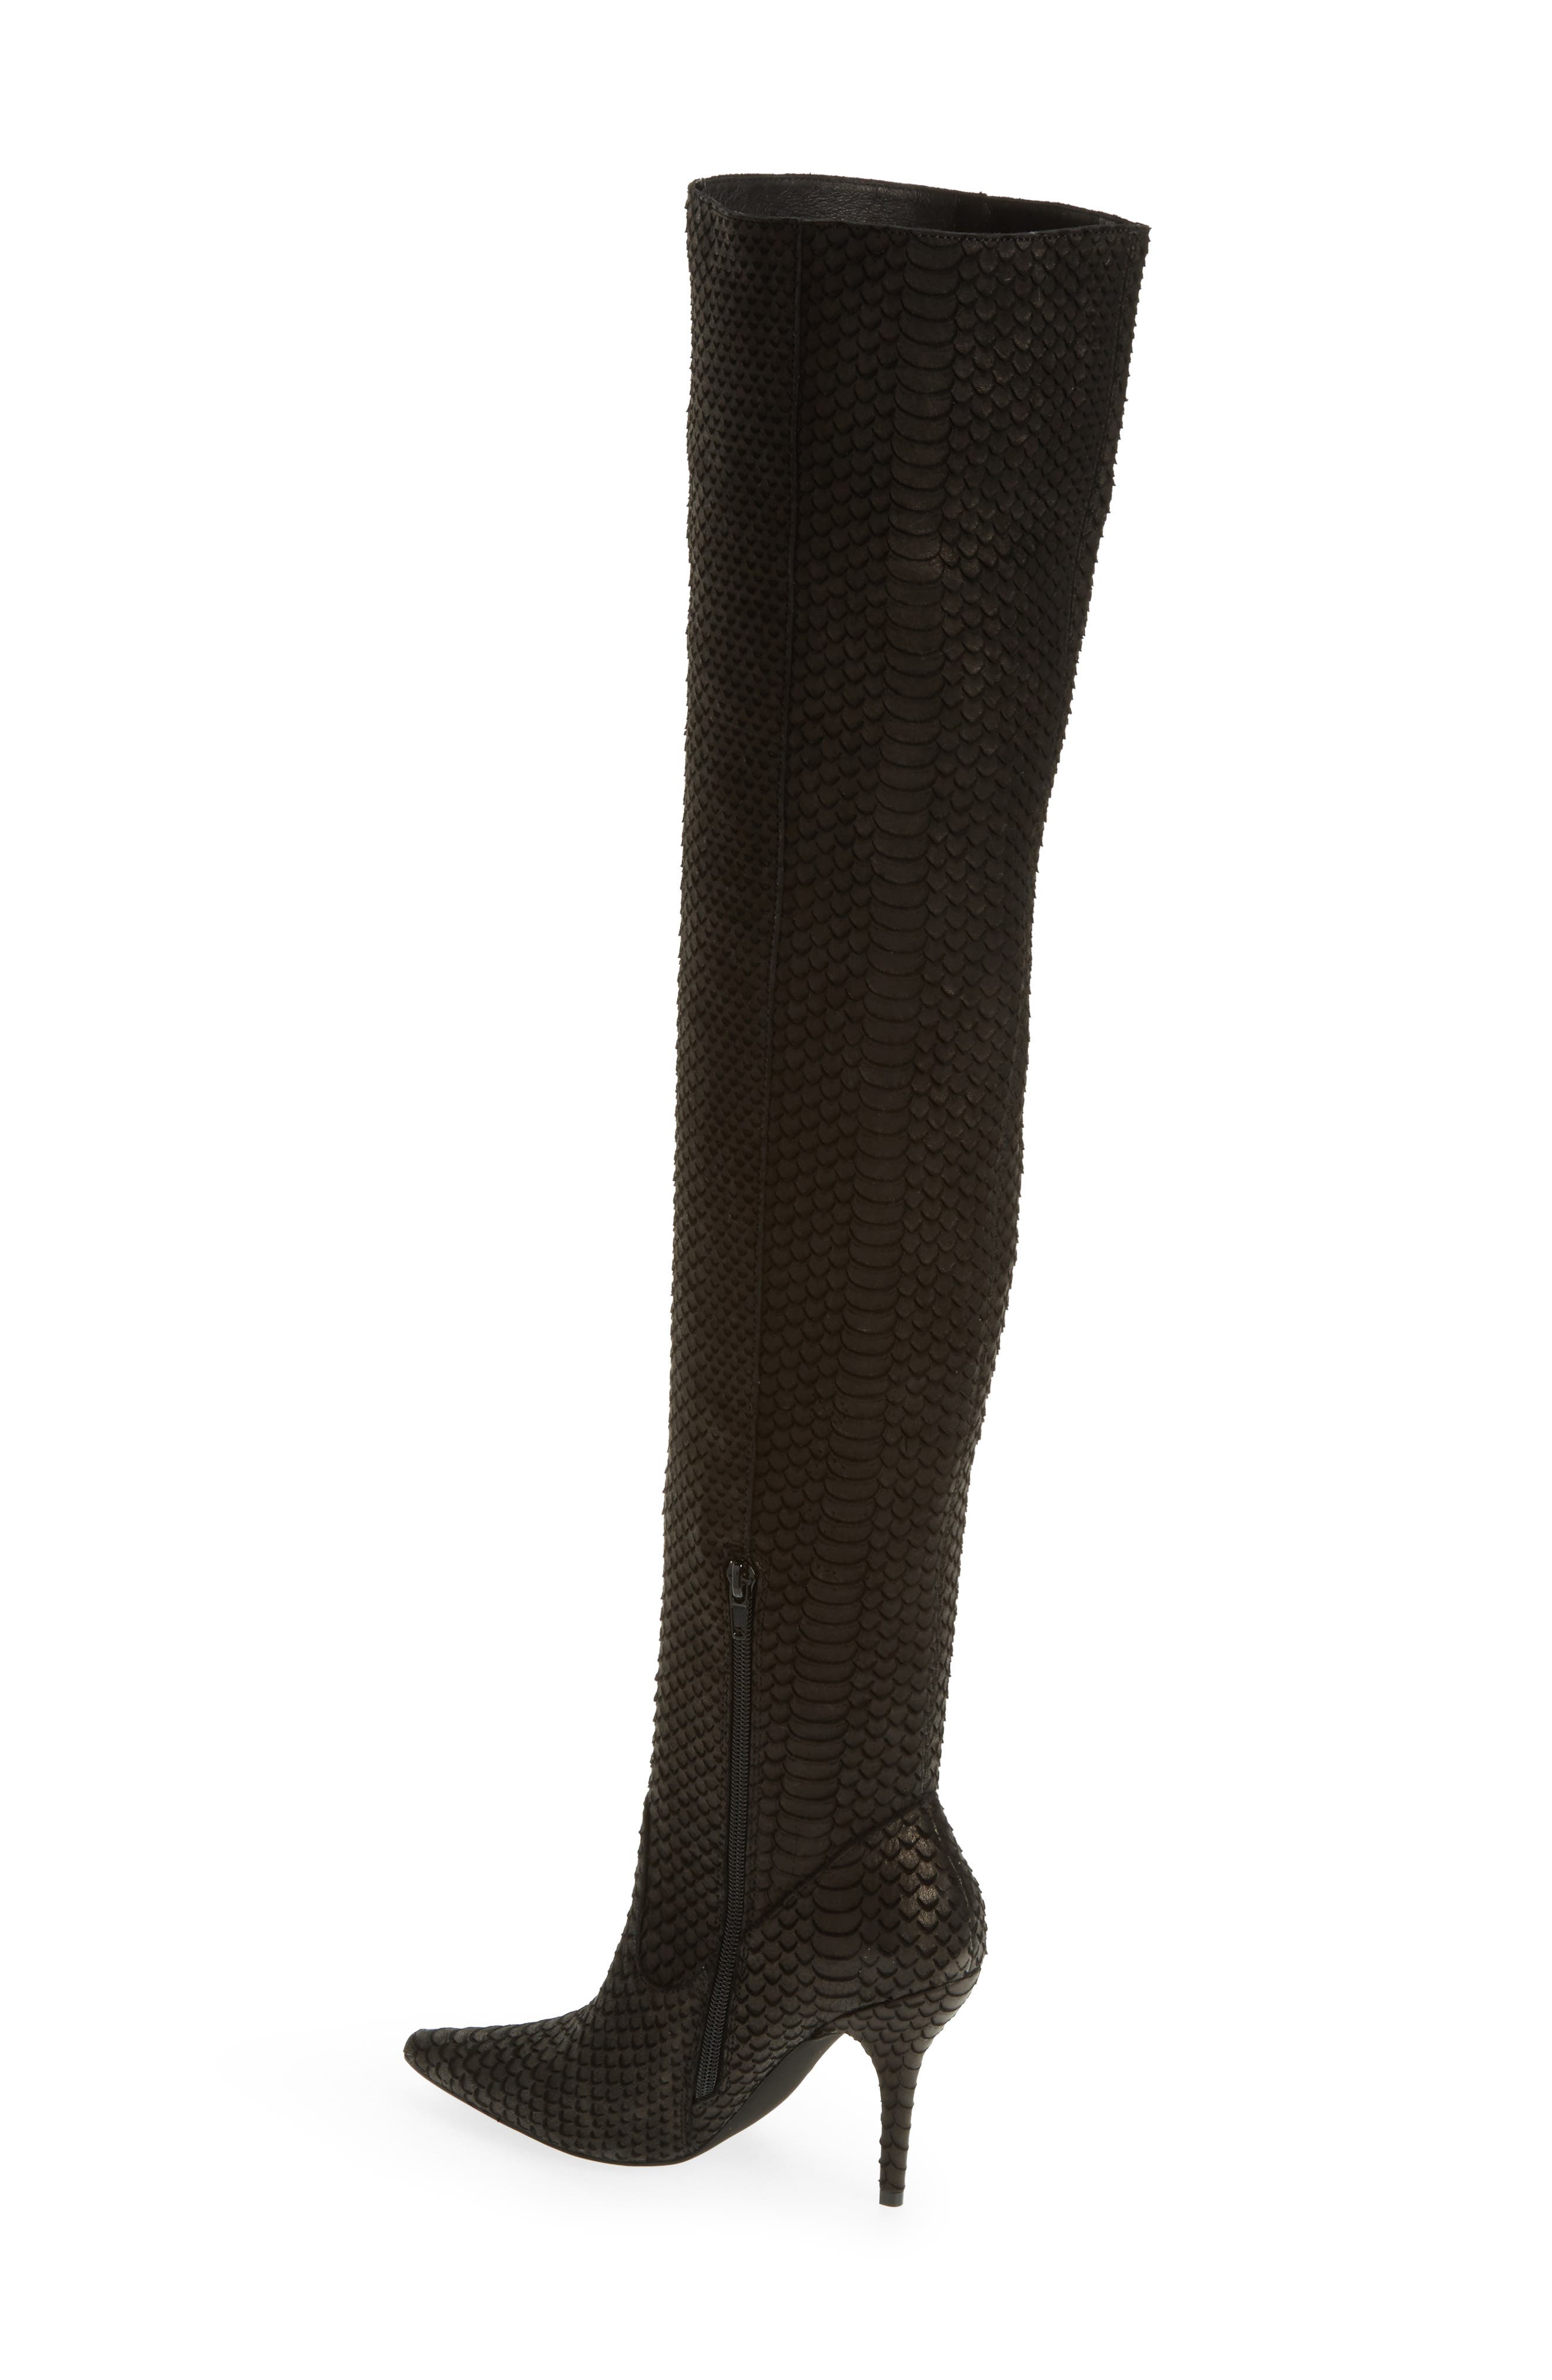 Galactic Thigh High Boot,                             Alternate thumbnail 2, color,                             001